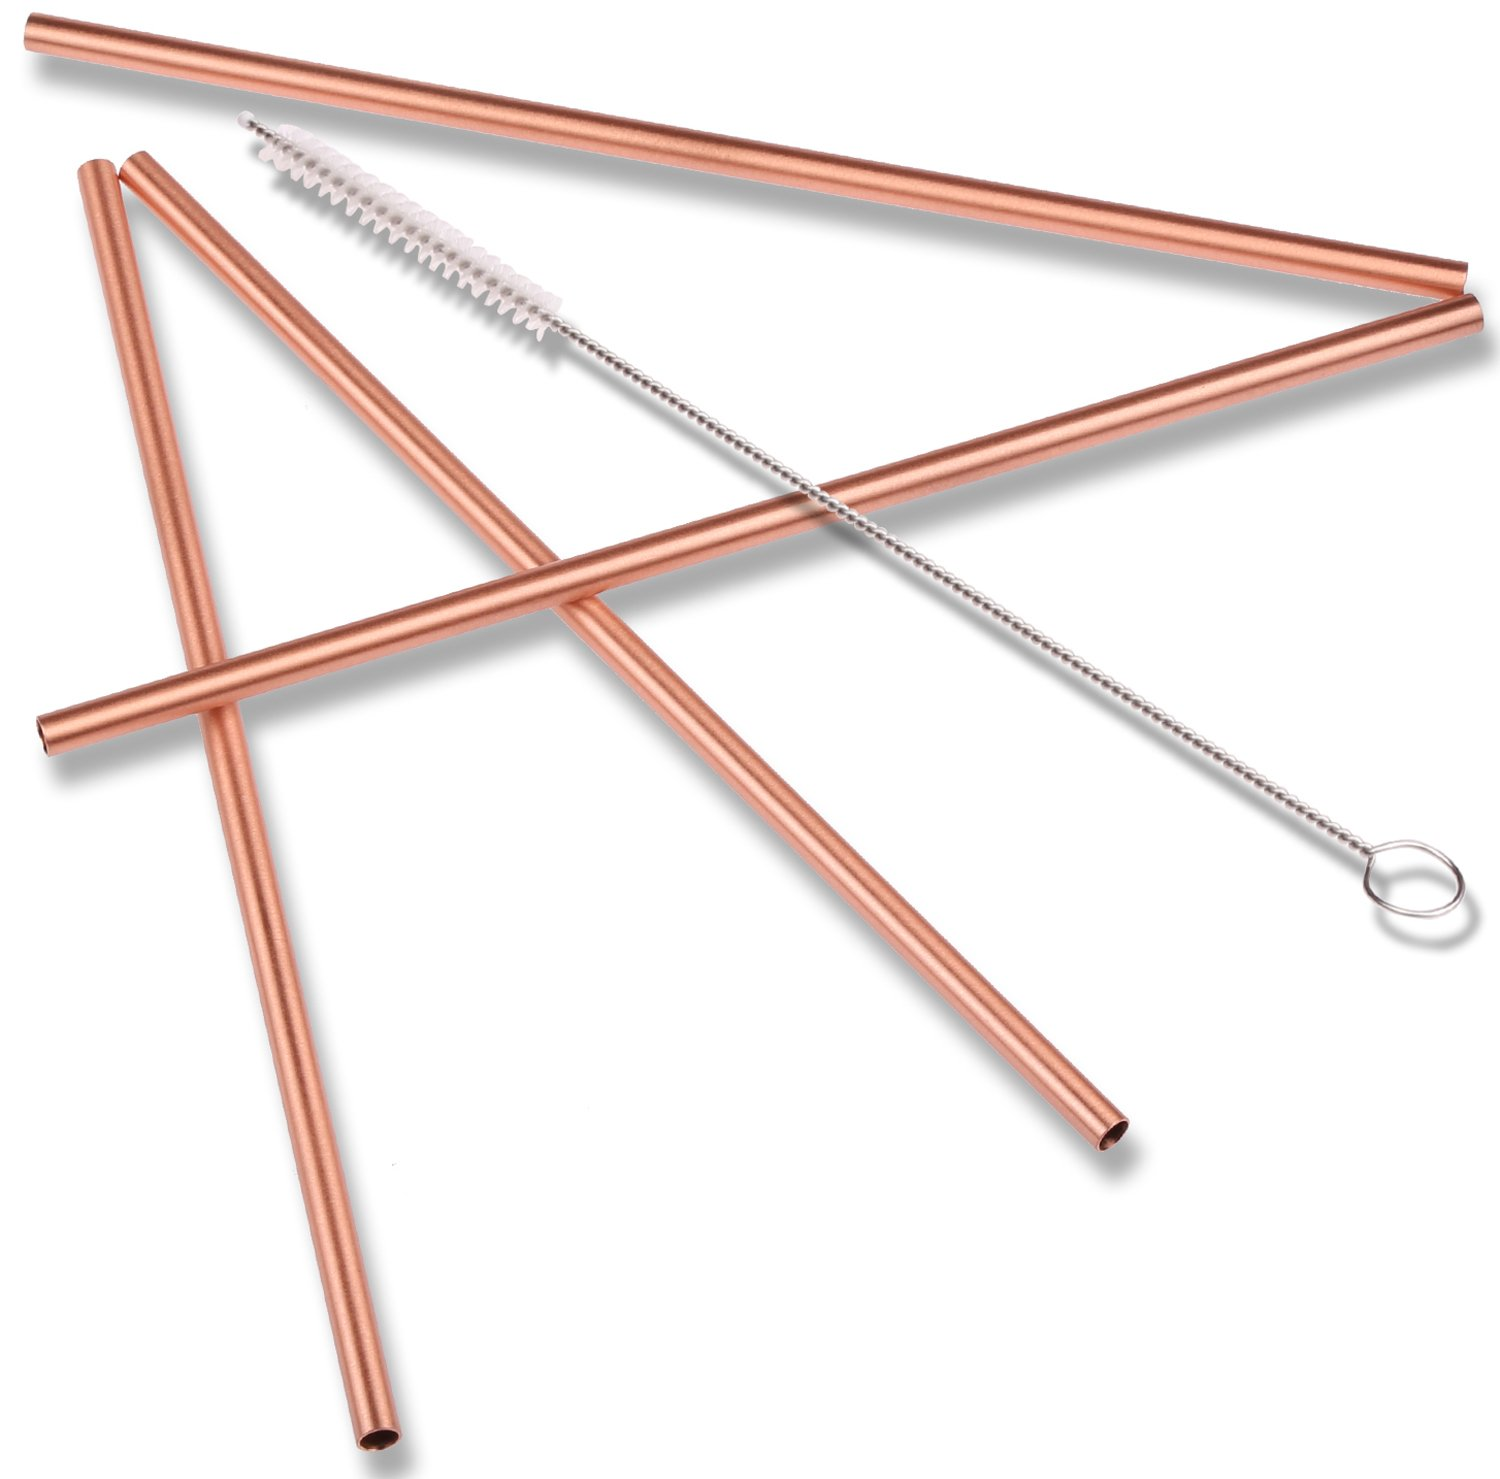 ZERRO Copper Straws Food Safe Solid Copper Mule Drinking Straws Set of 4 Straight 8.5inch Cleaning Brush Included